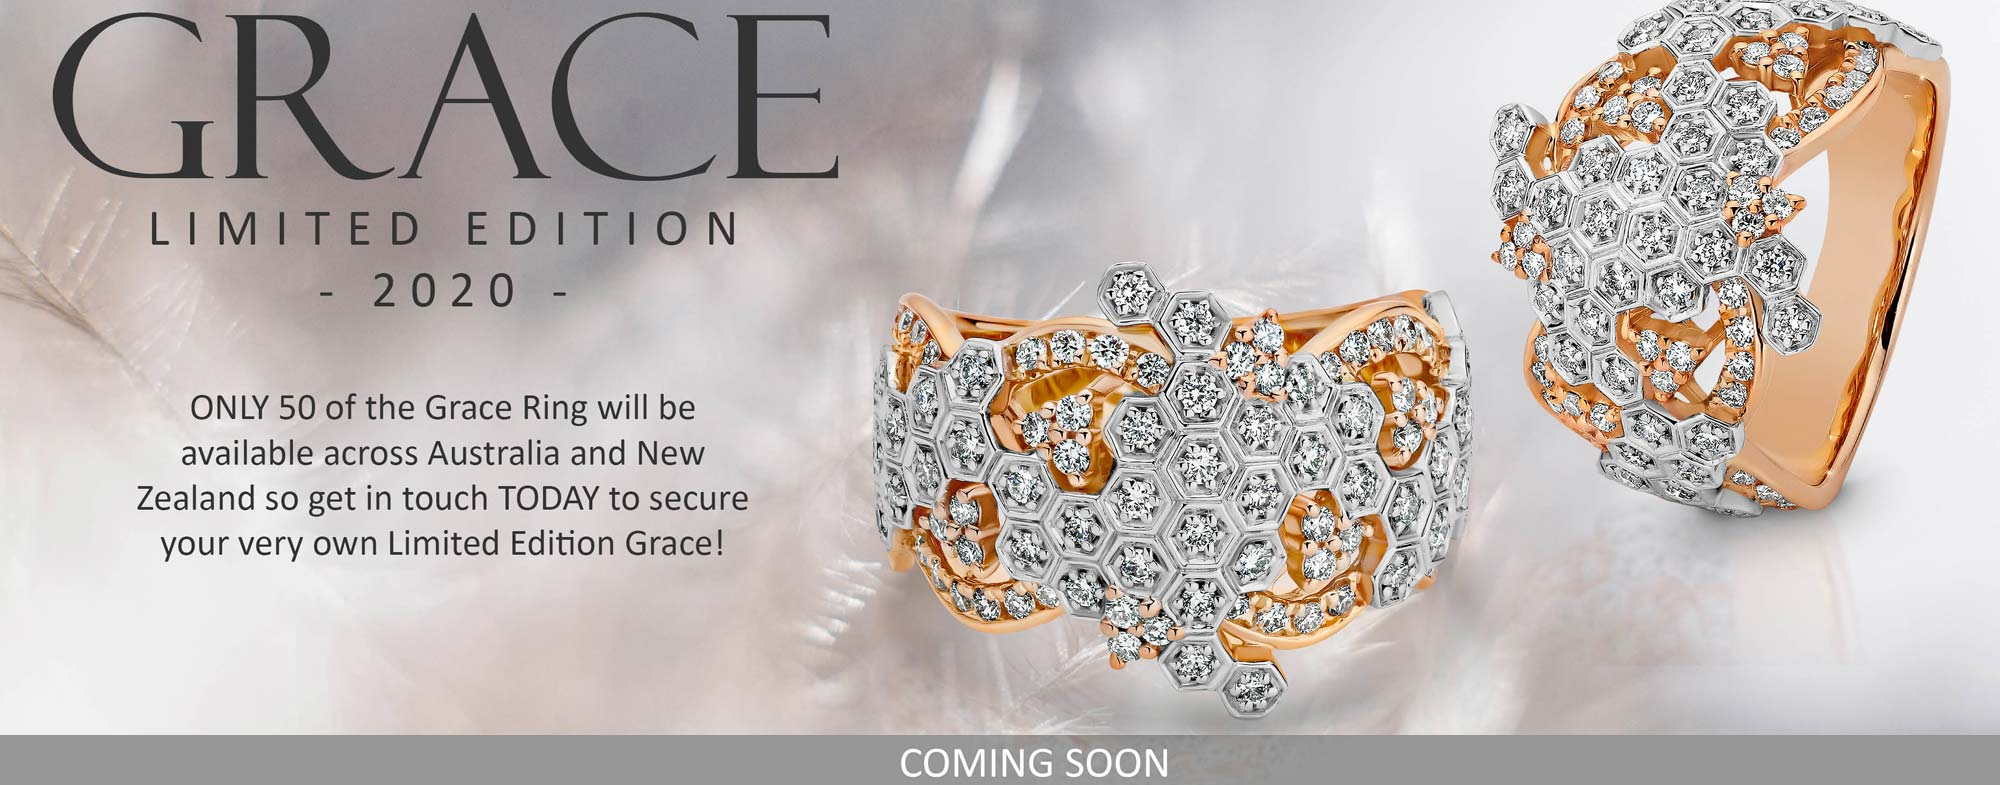 Shop Grace Diamond Rings At Facets Showcase Jewellers In Emerald, QLD